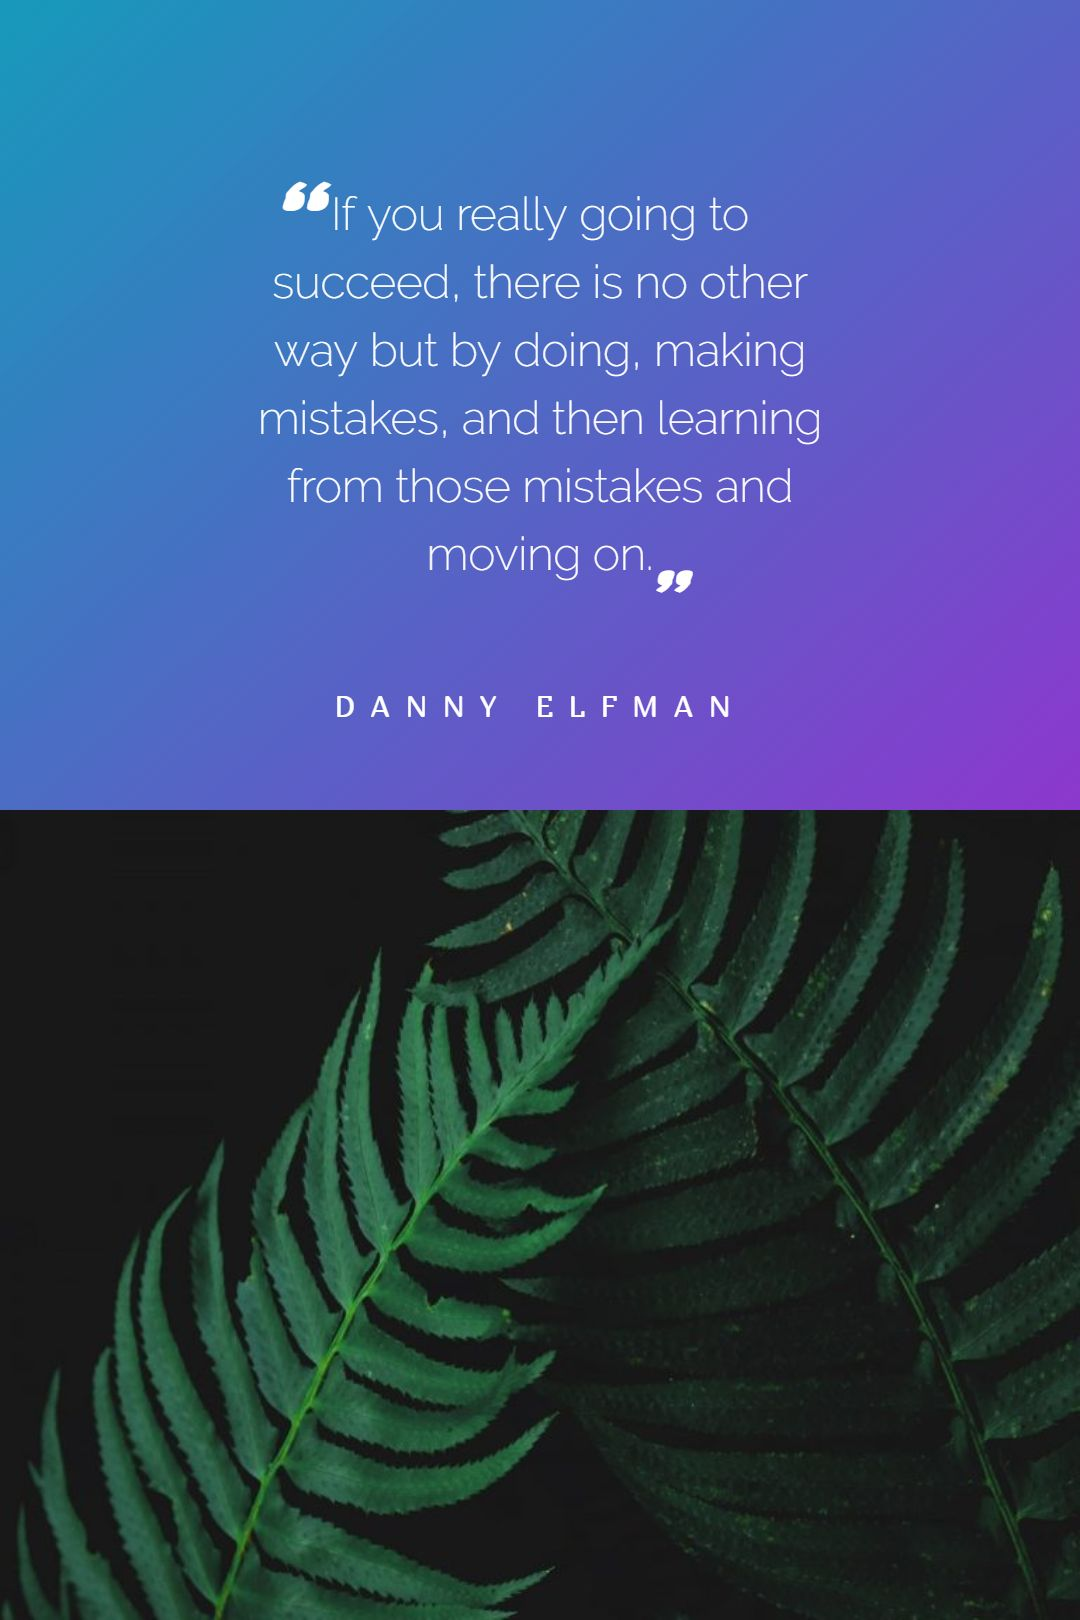 Quotes image of If you really going to succeed, there is no other way but by doing, making mistakes, and then learning from those mistakes and moving on.